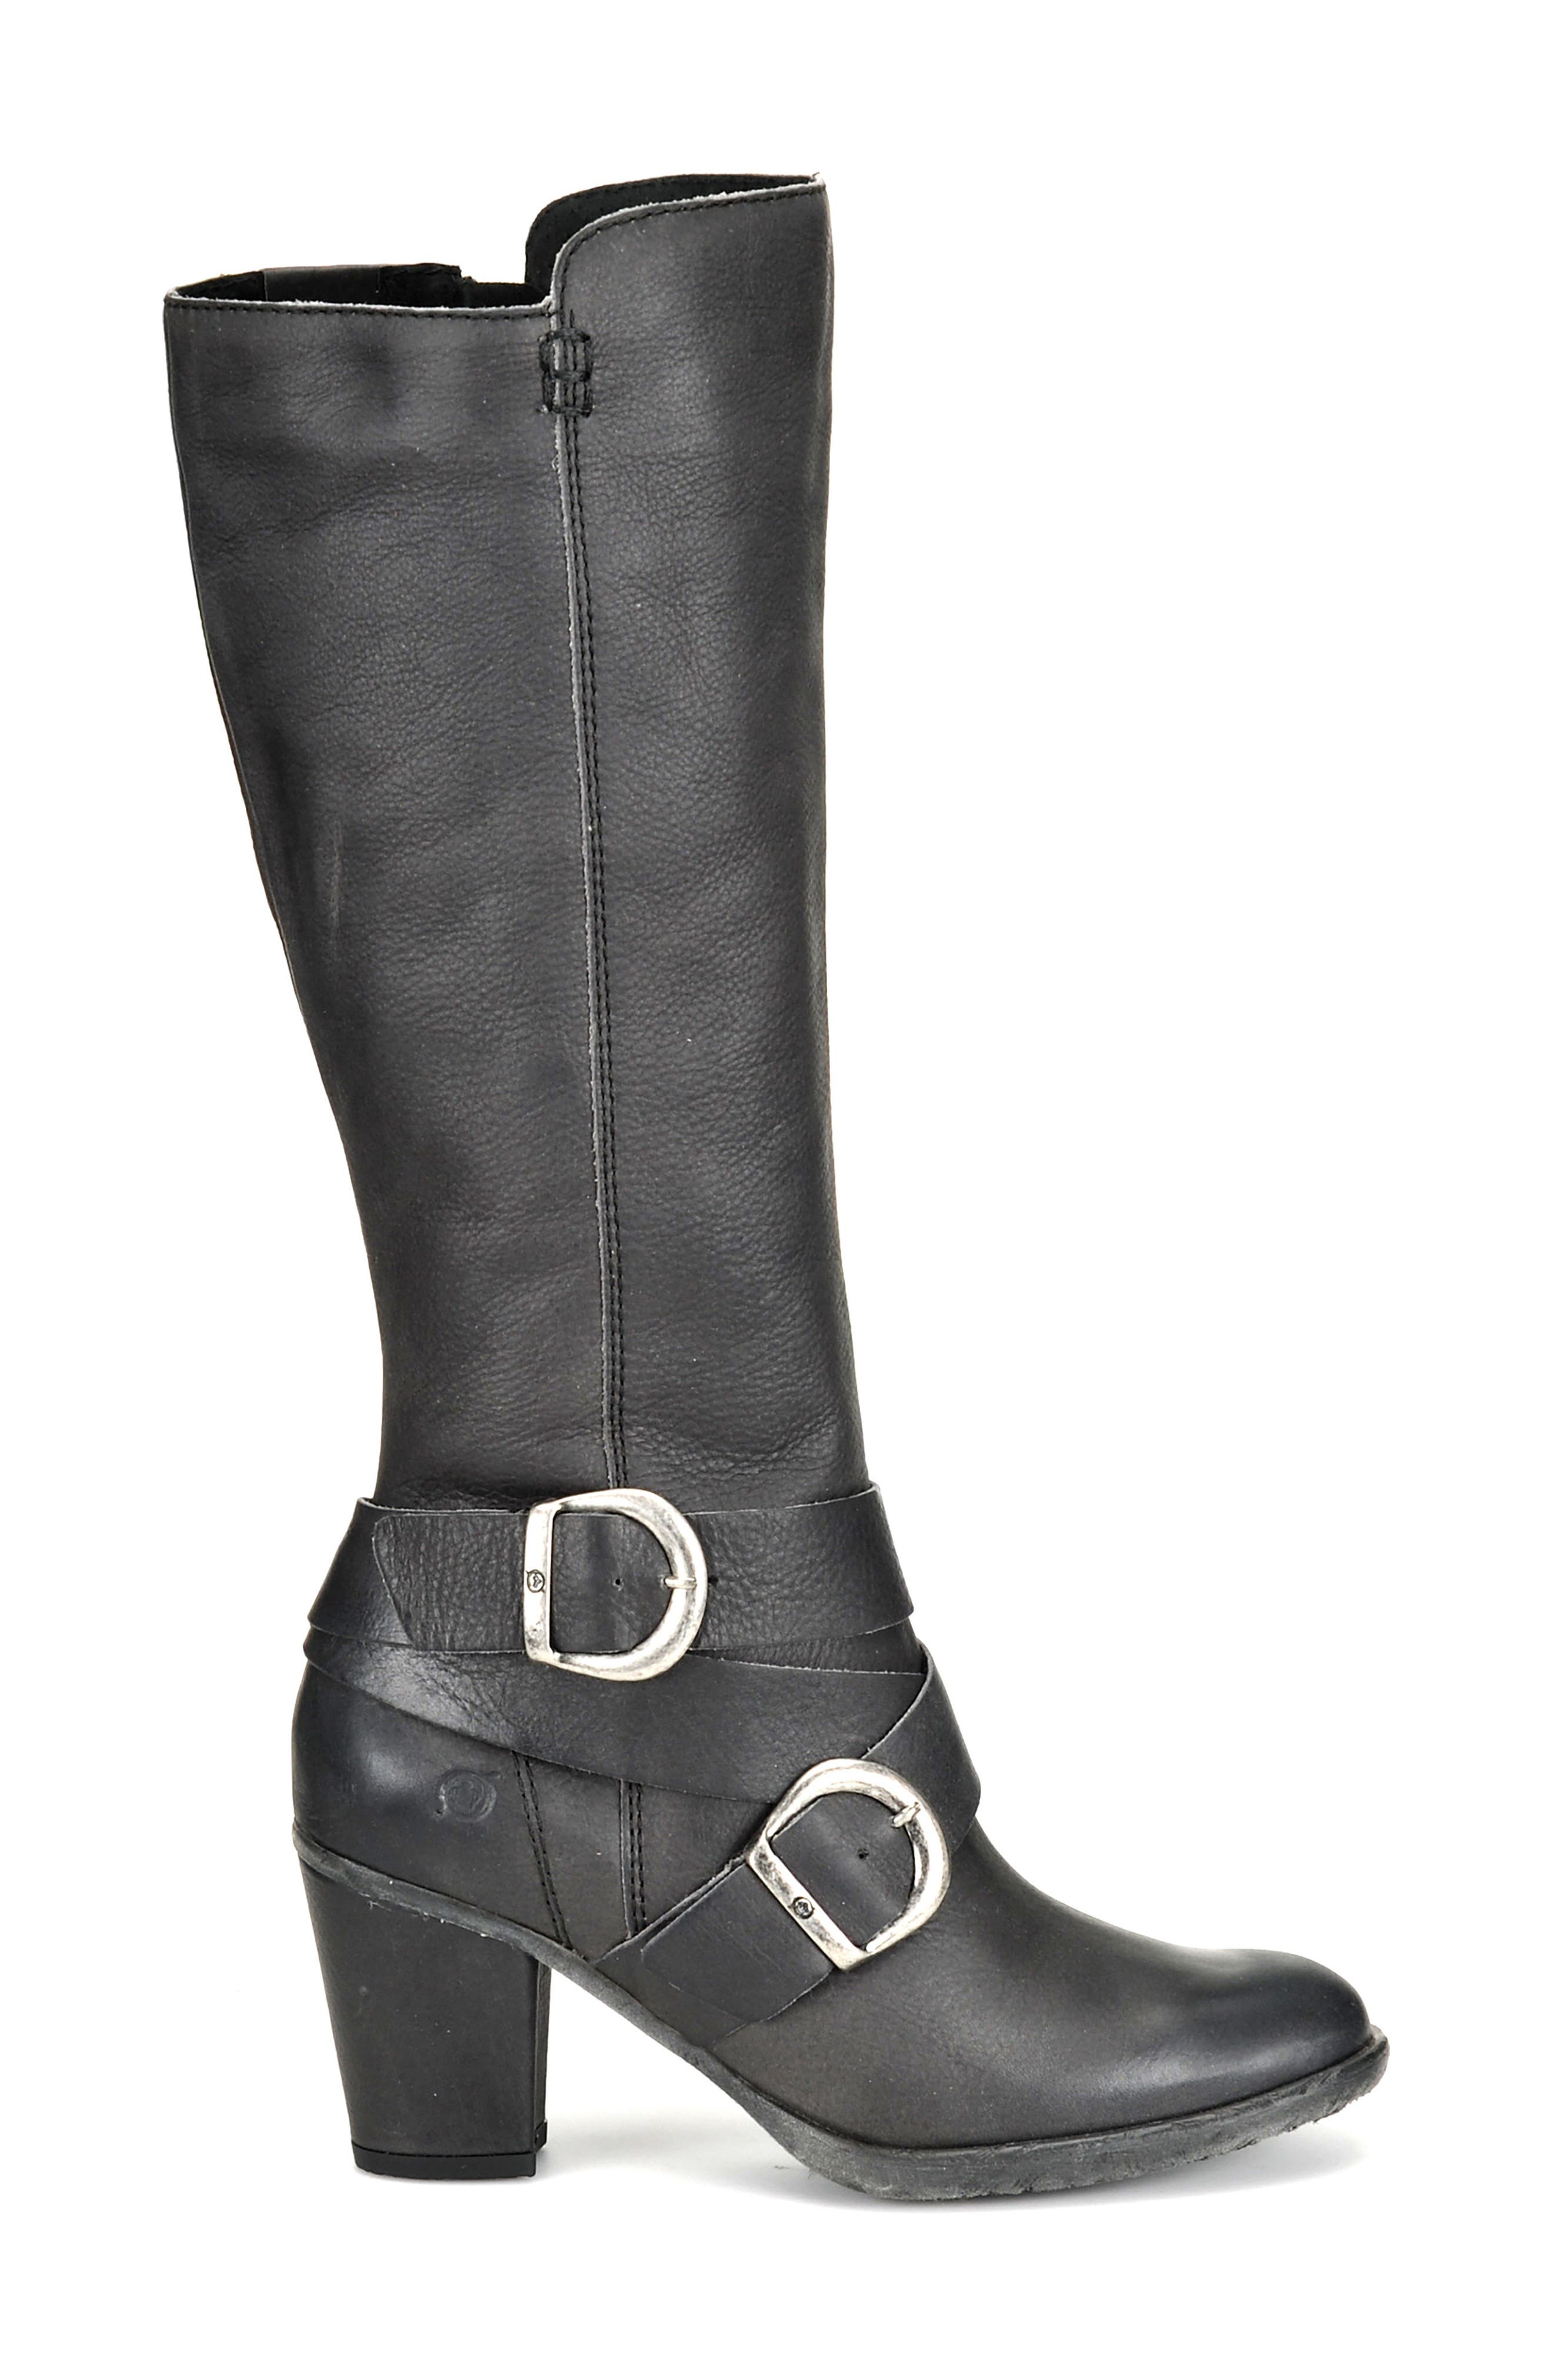 Alternate Image 3  - Børn Cresent Knee High Boot (Women)